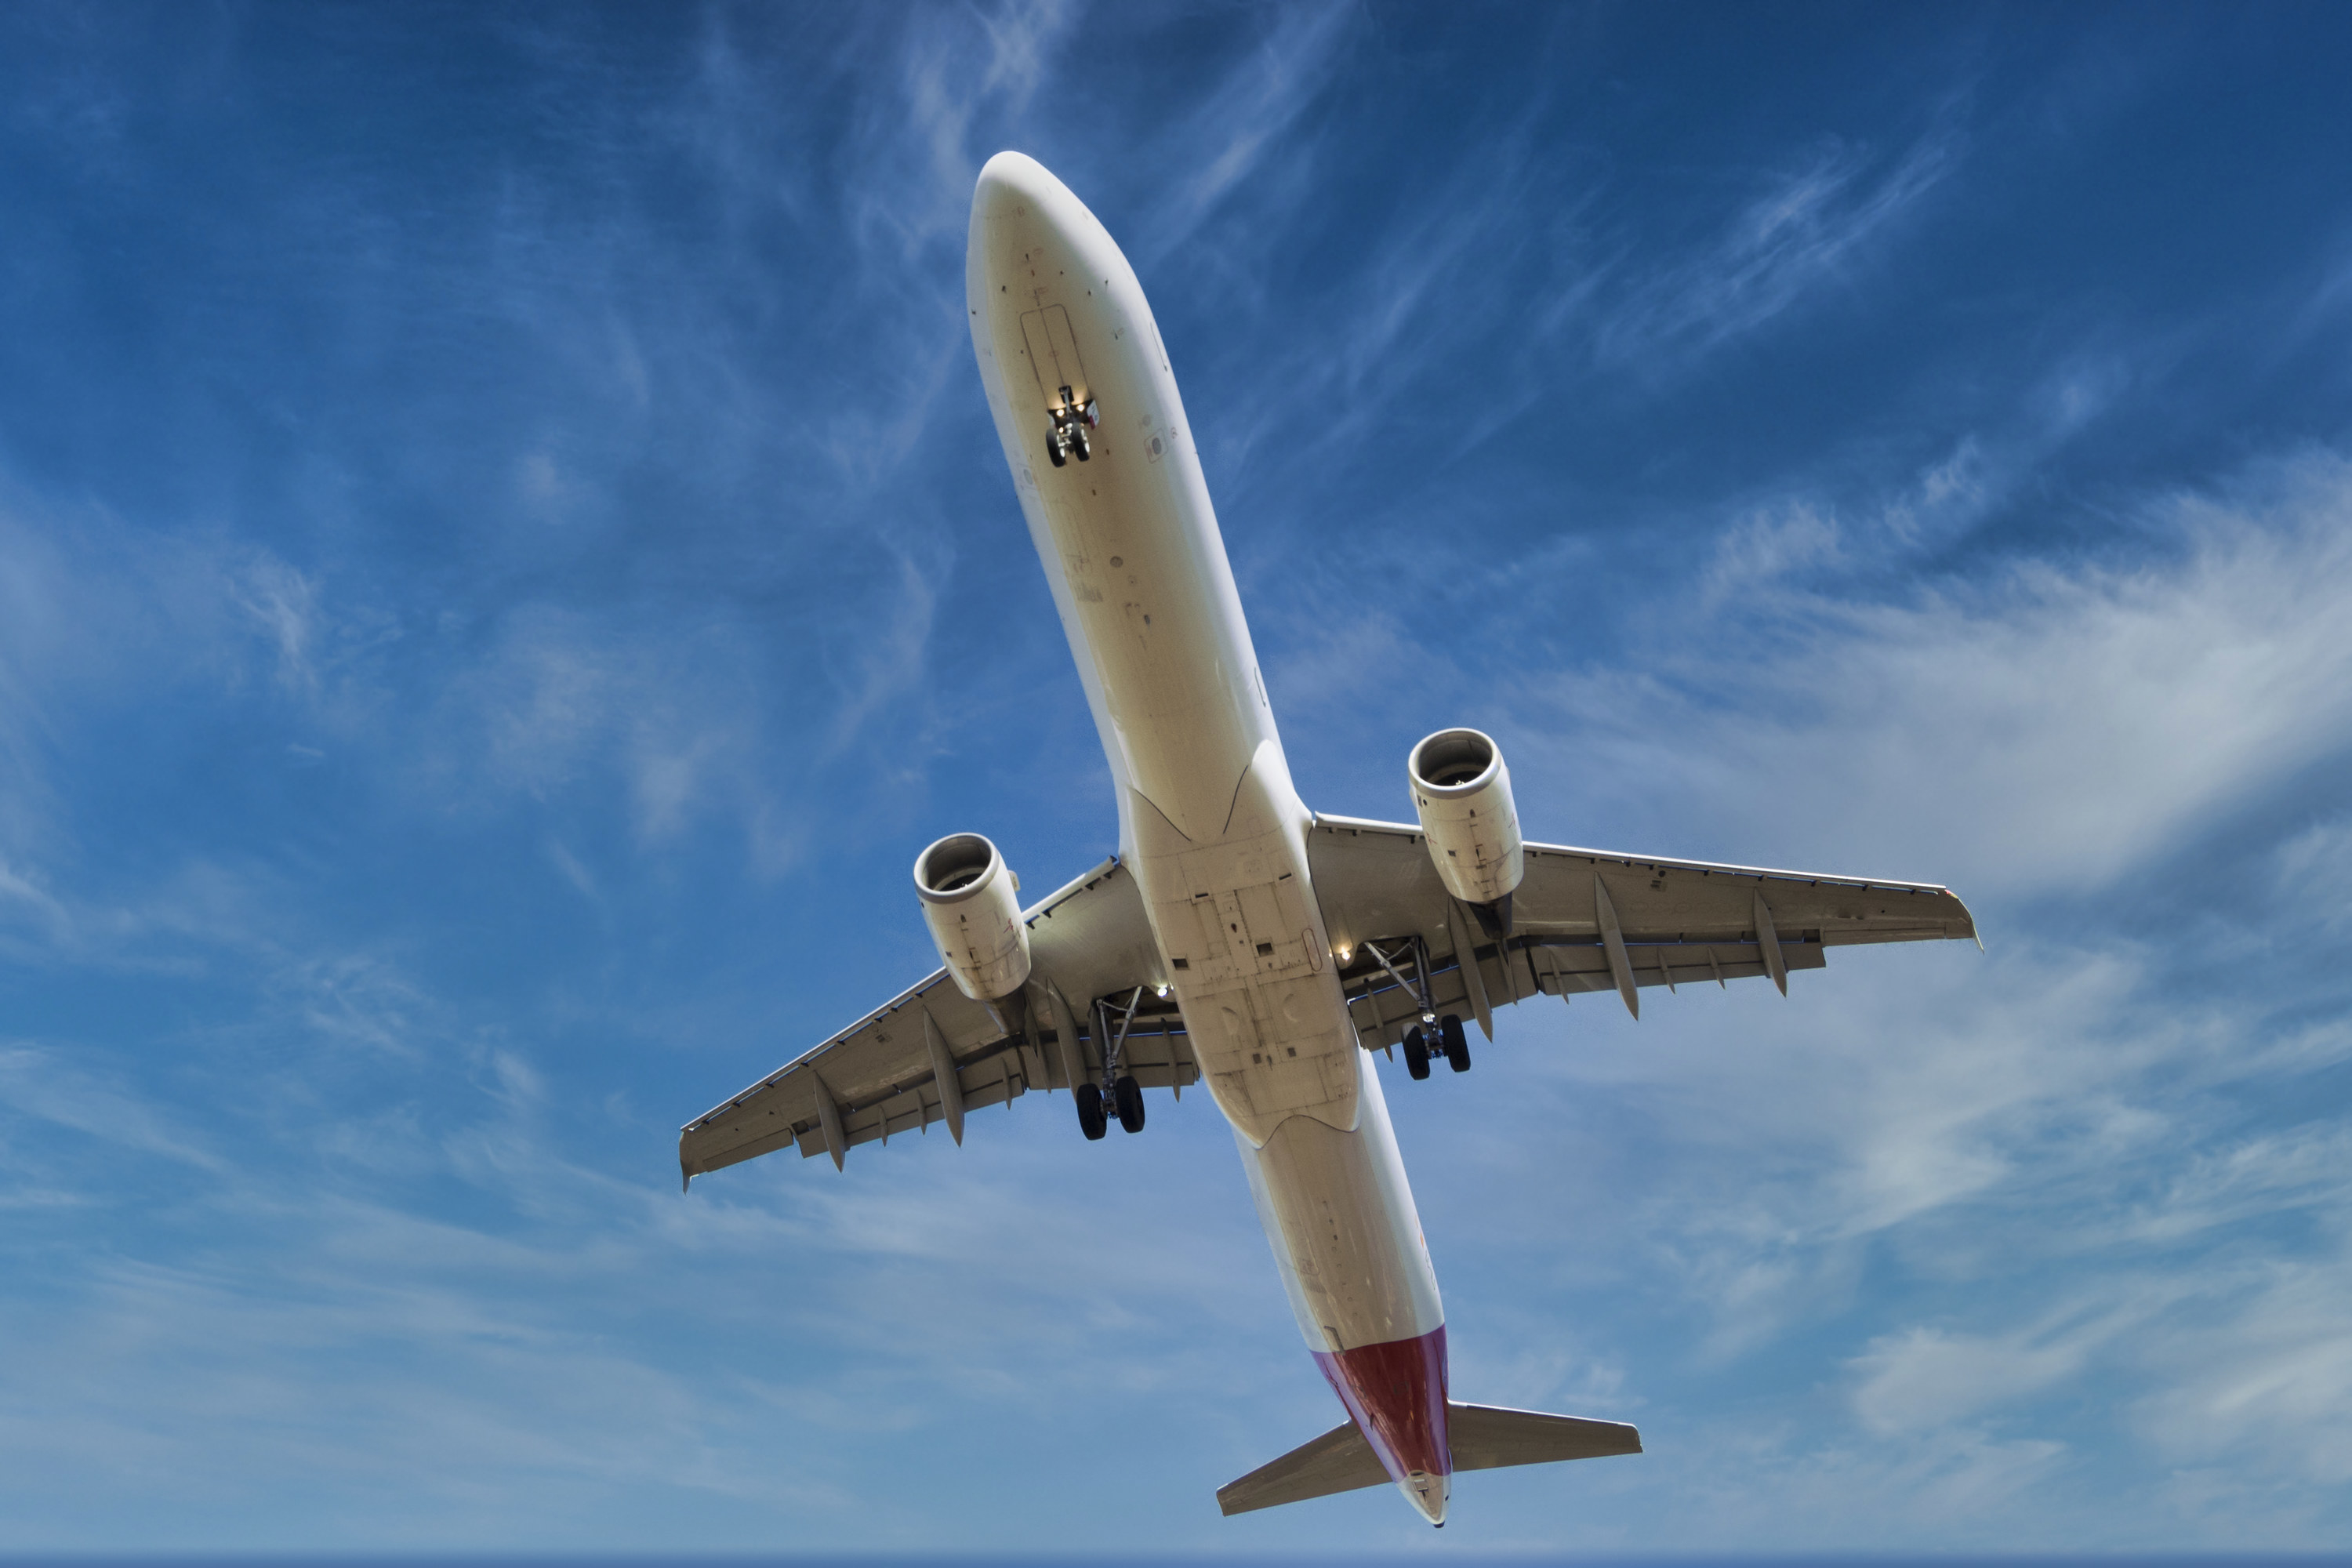 Stock photo of big plane before landing, flying in blue sky.